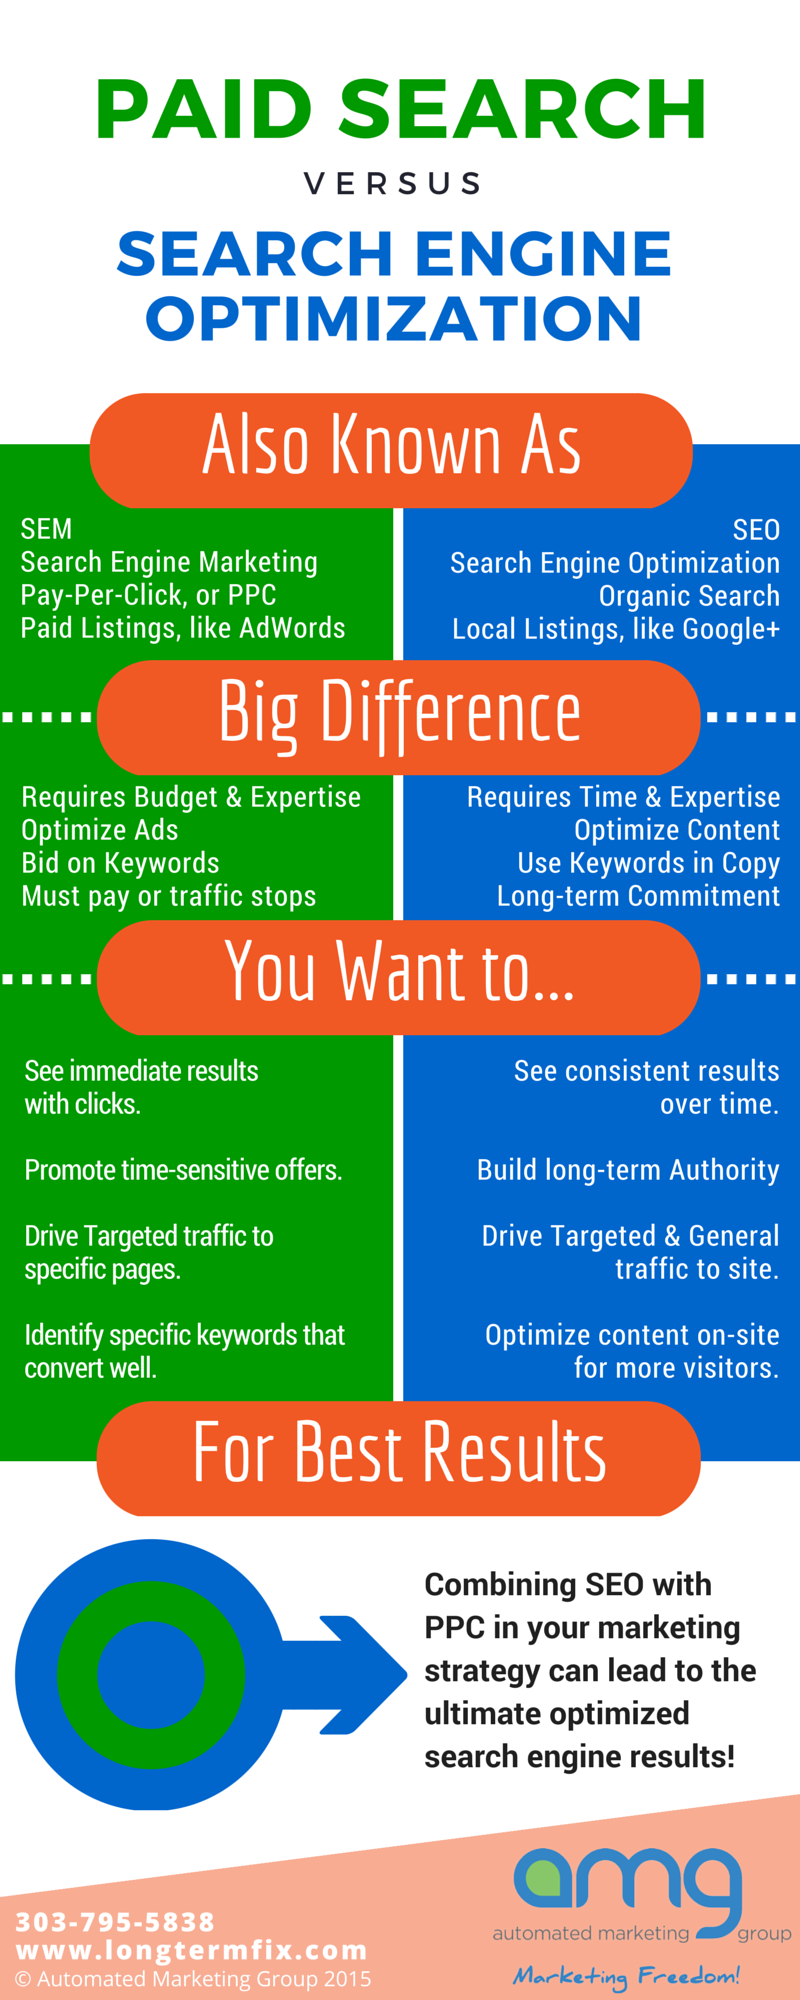 This infographic shows the difference between paid search and search engine optimization by the Automated Marketing Group in Littleton Denver Colorado